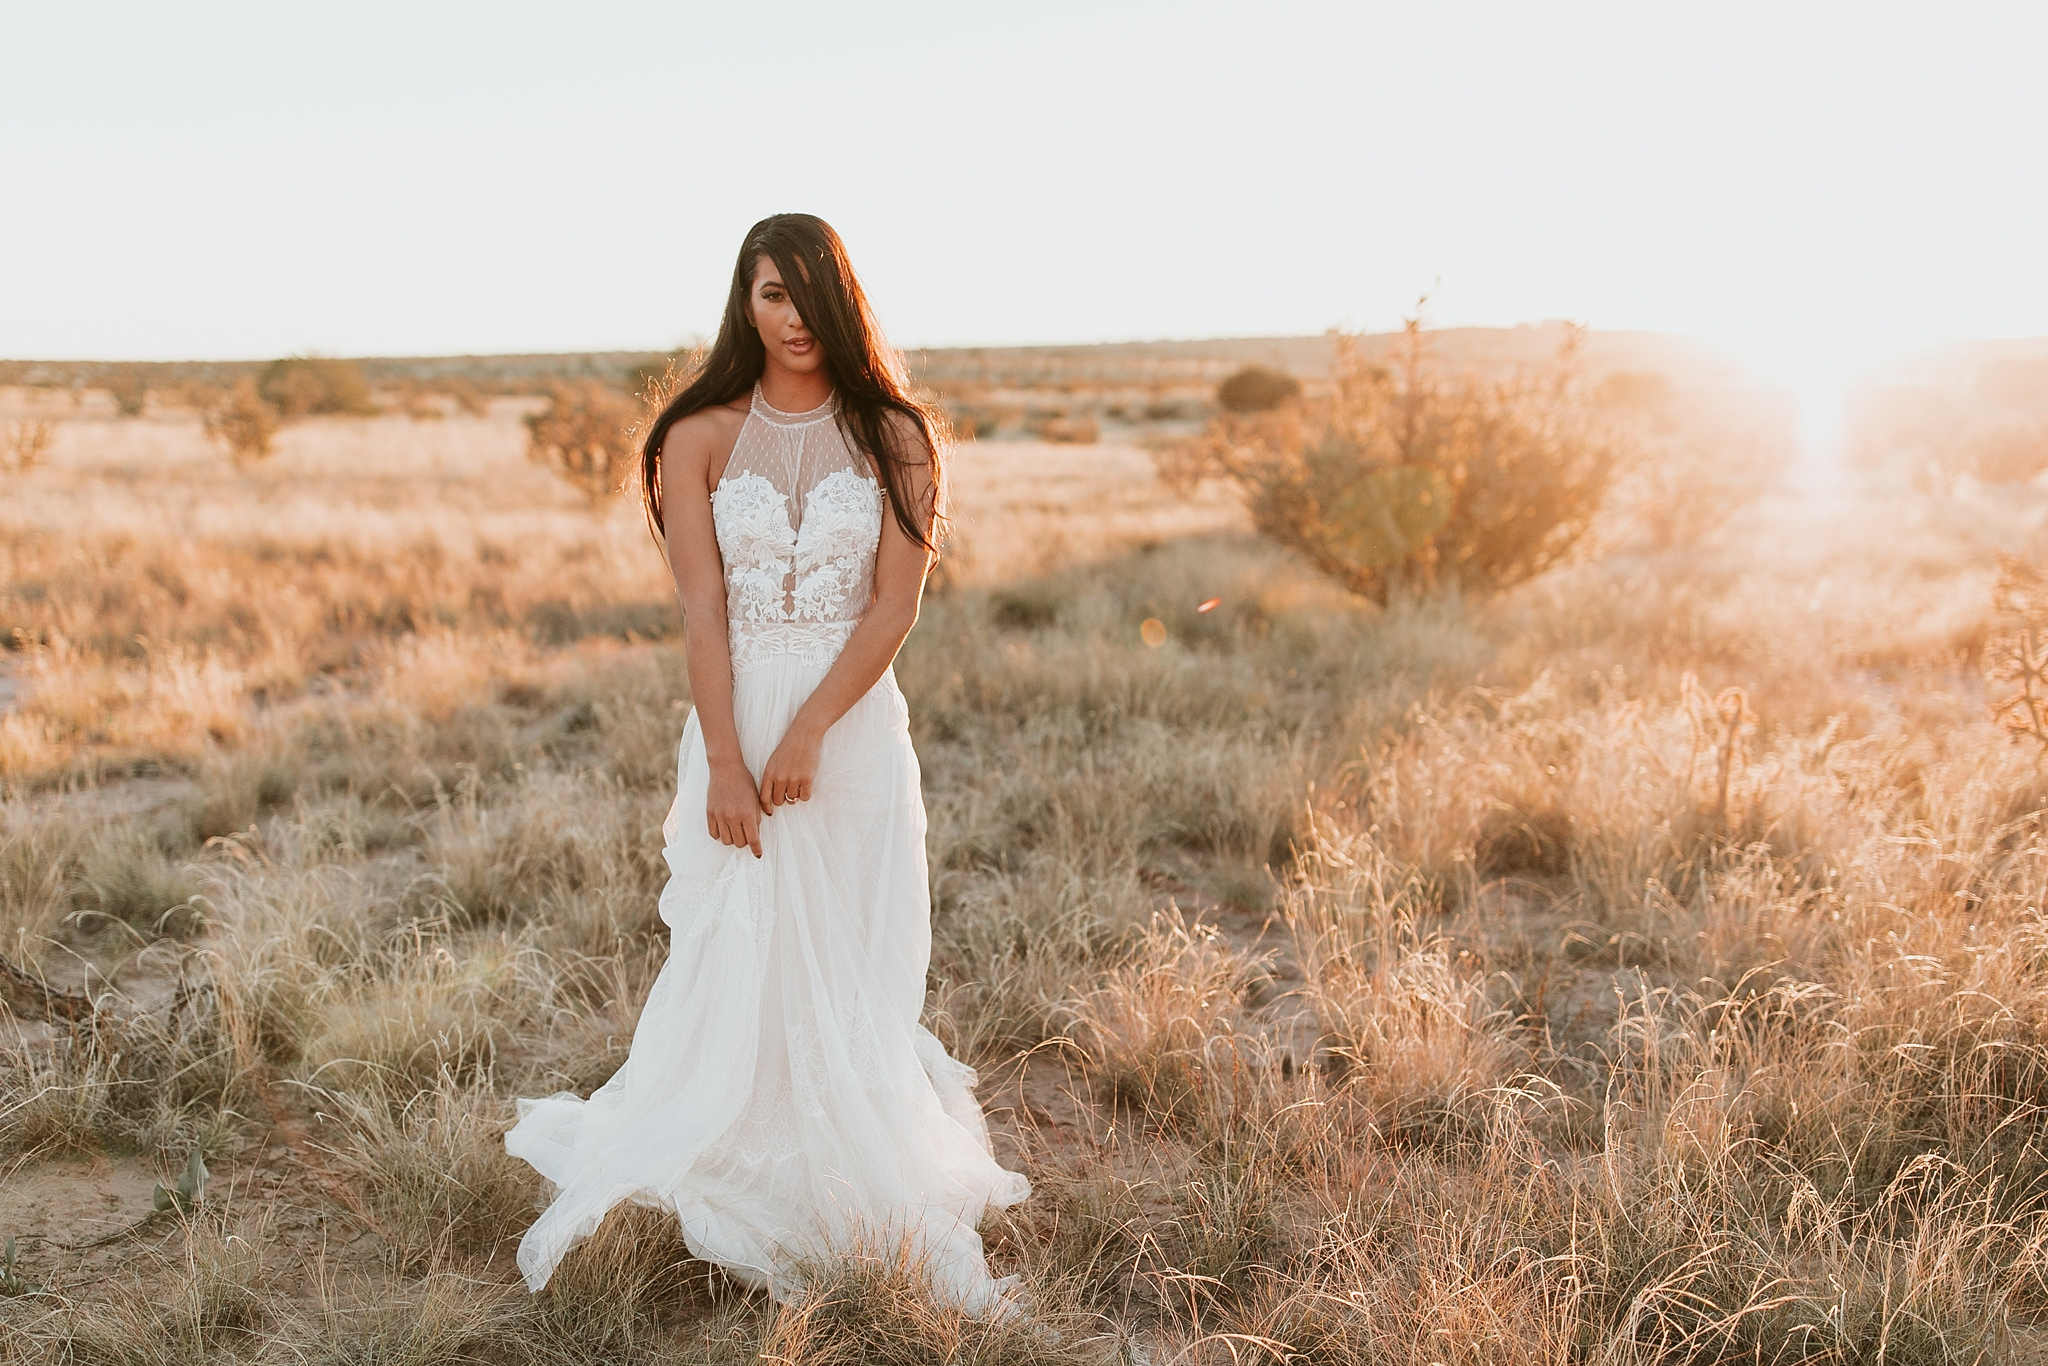 Alicia+lucia+photography+-+albuquerque+wedding+photographer+-+santa+fe+wedding+photography+-+new+mexico+wedding+photographer+-+new+mexico+wedding+-+wedding+gowns+-+bridal+gowns+-+a+line+wedding+gown_0056.jpg